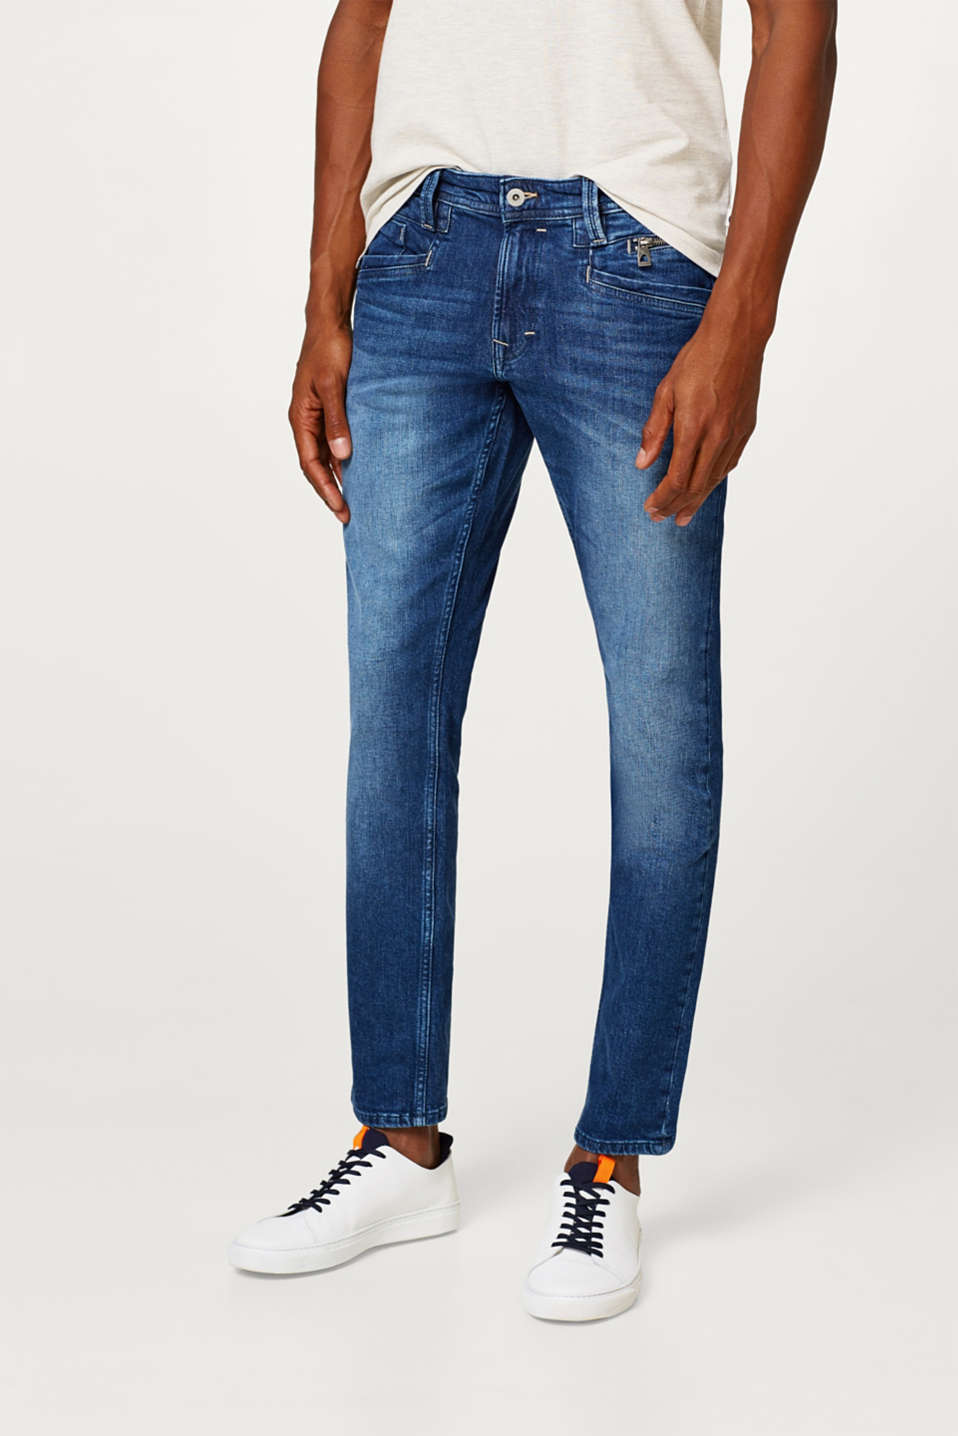 edc - Stretch jeans with a zip detail and a vintage wash